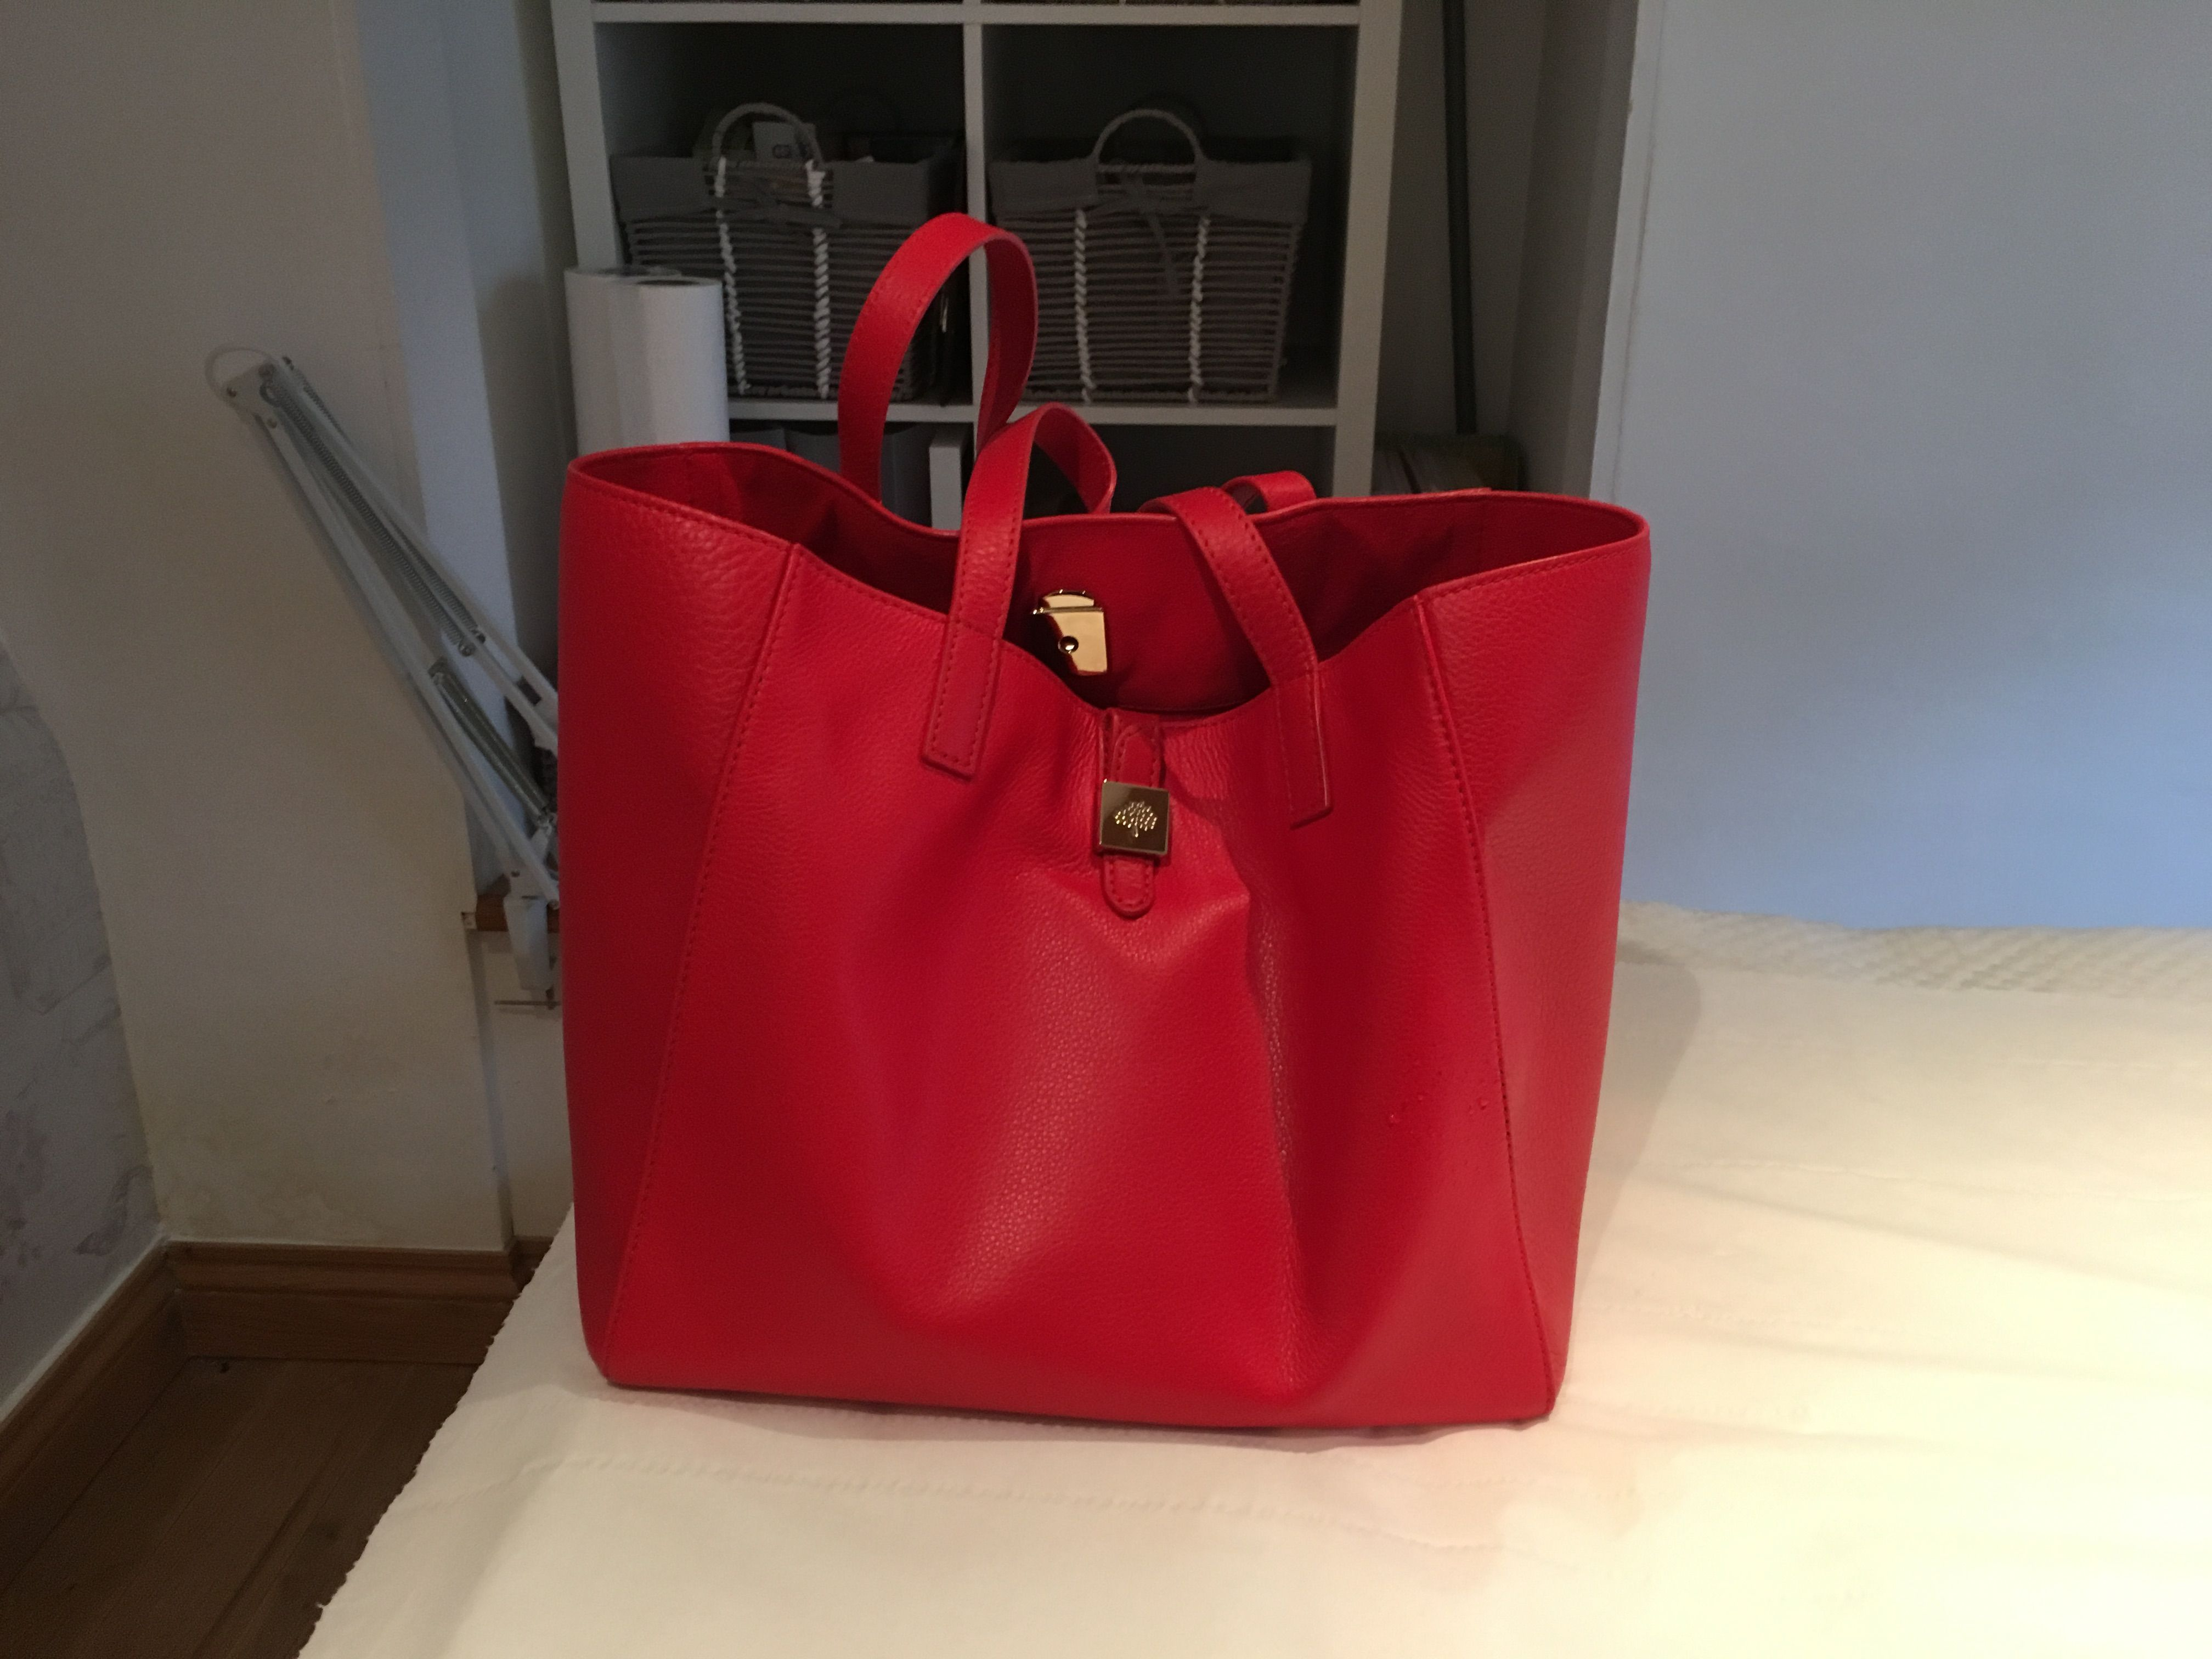 01a39d0d81 cheapest mulberry tessie tote online courses 3bbf9 91f9c